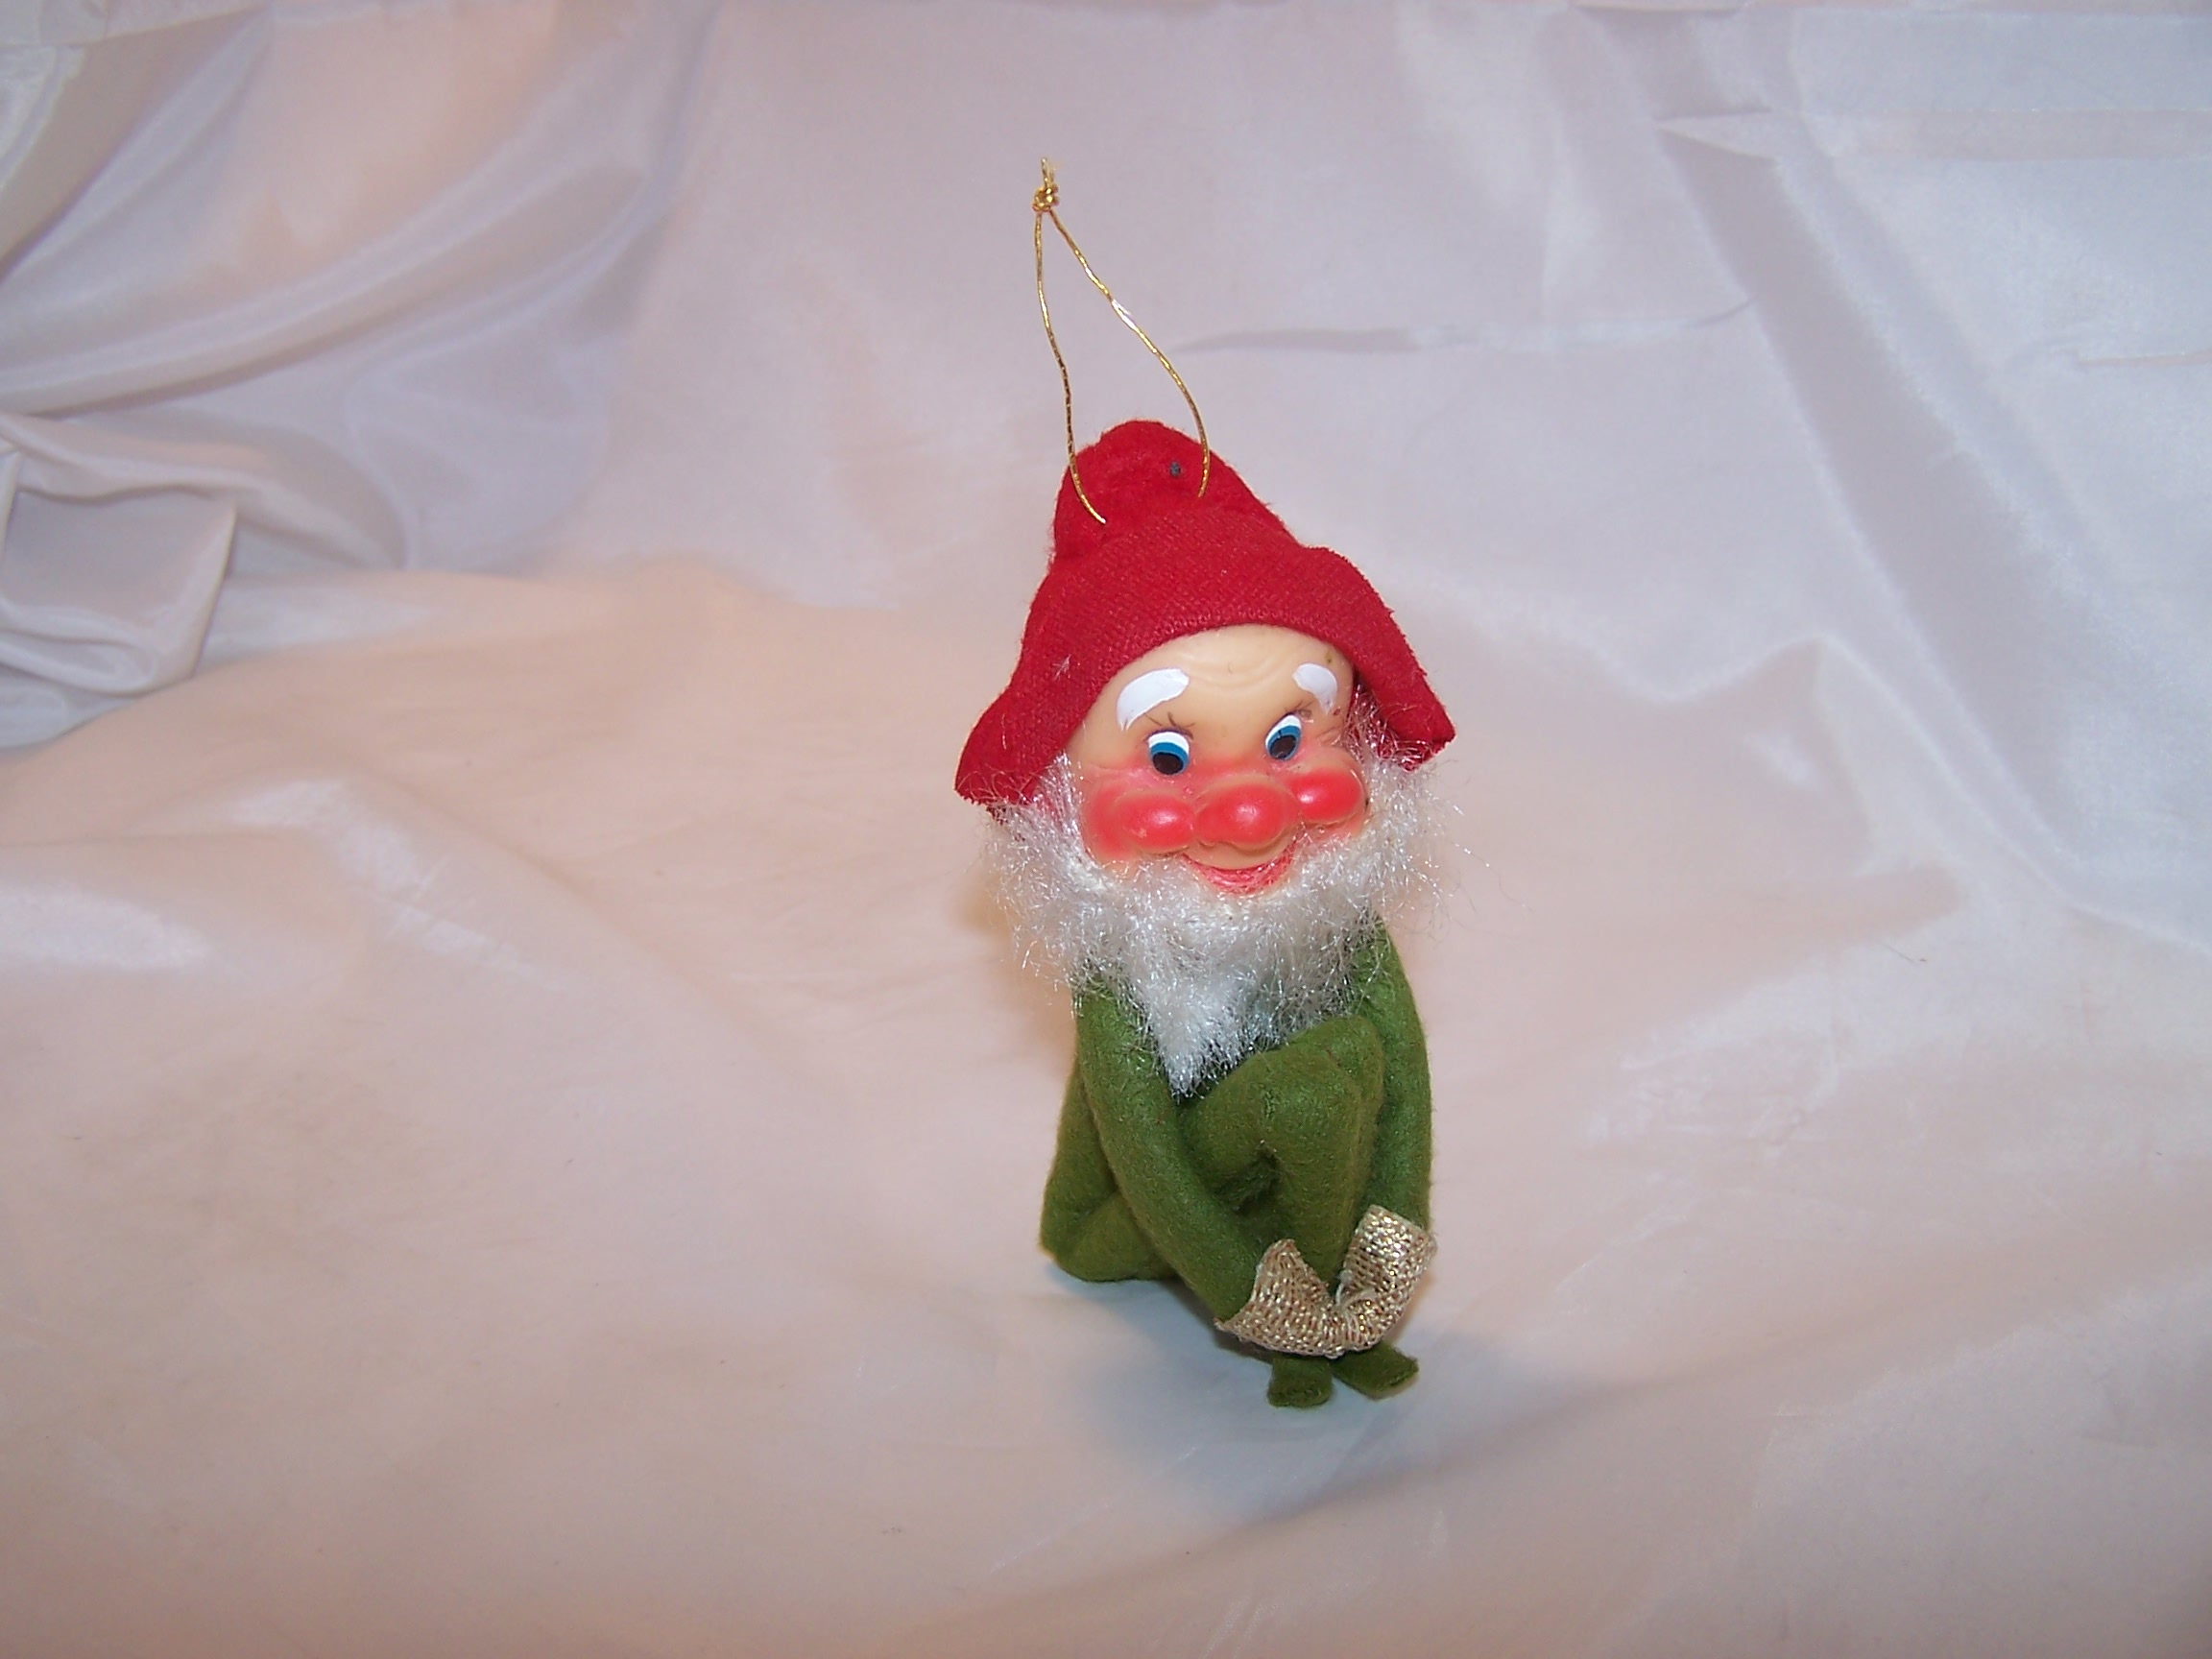 Elf for Your Shelf, Bearded Green Elf, Pixie Doll w Red Hat